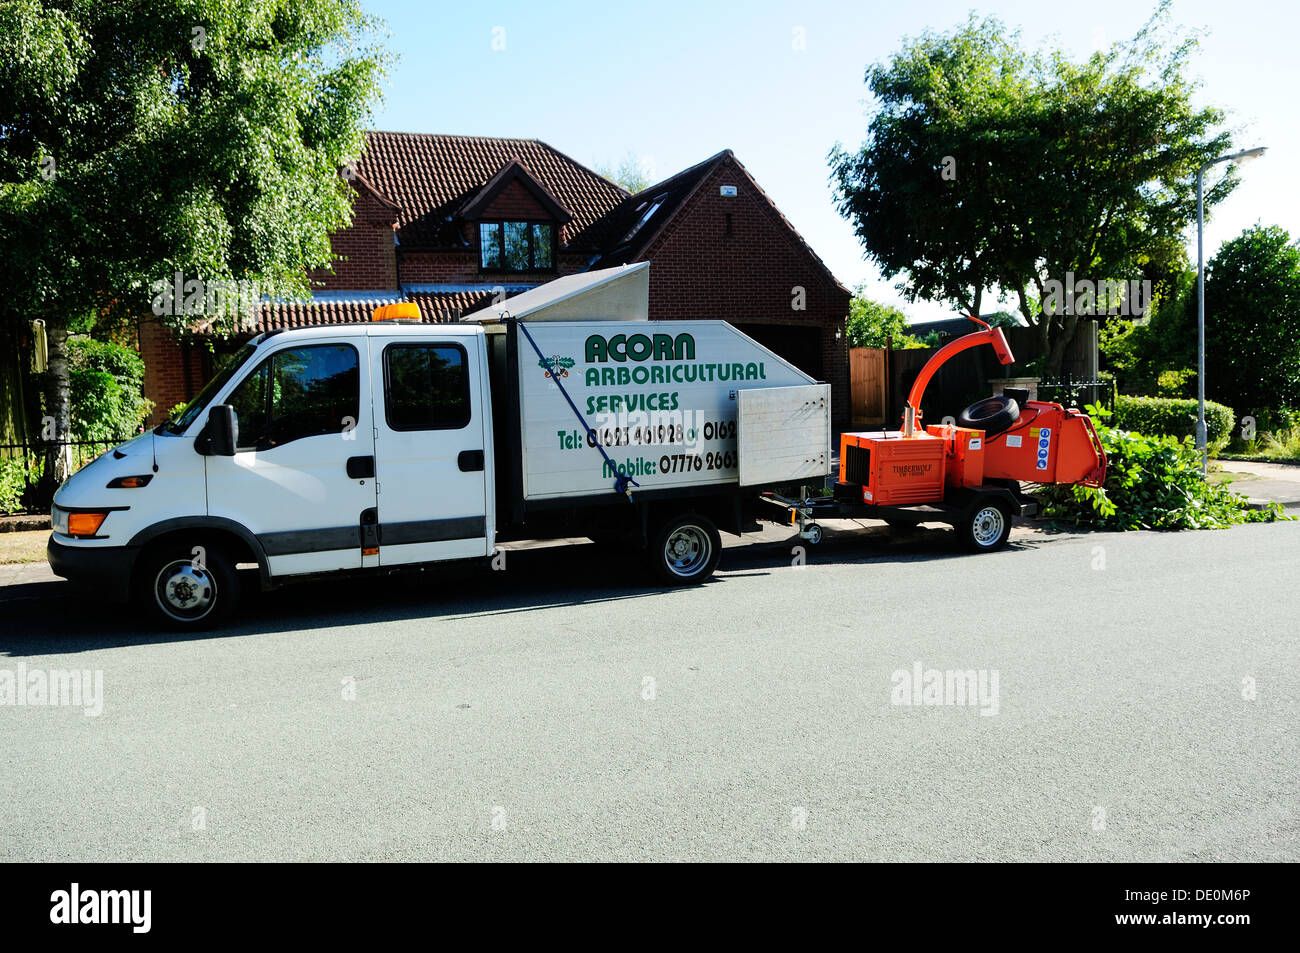 Aboricultral Tree Services. - Stock Image